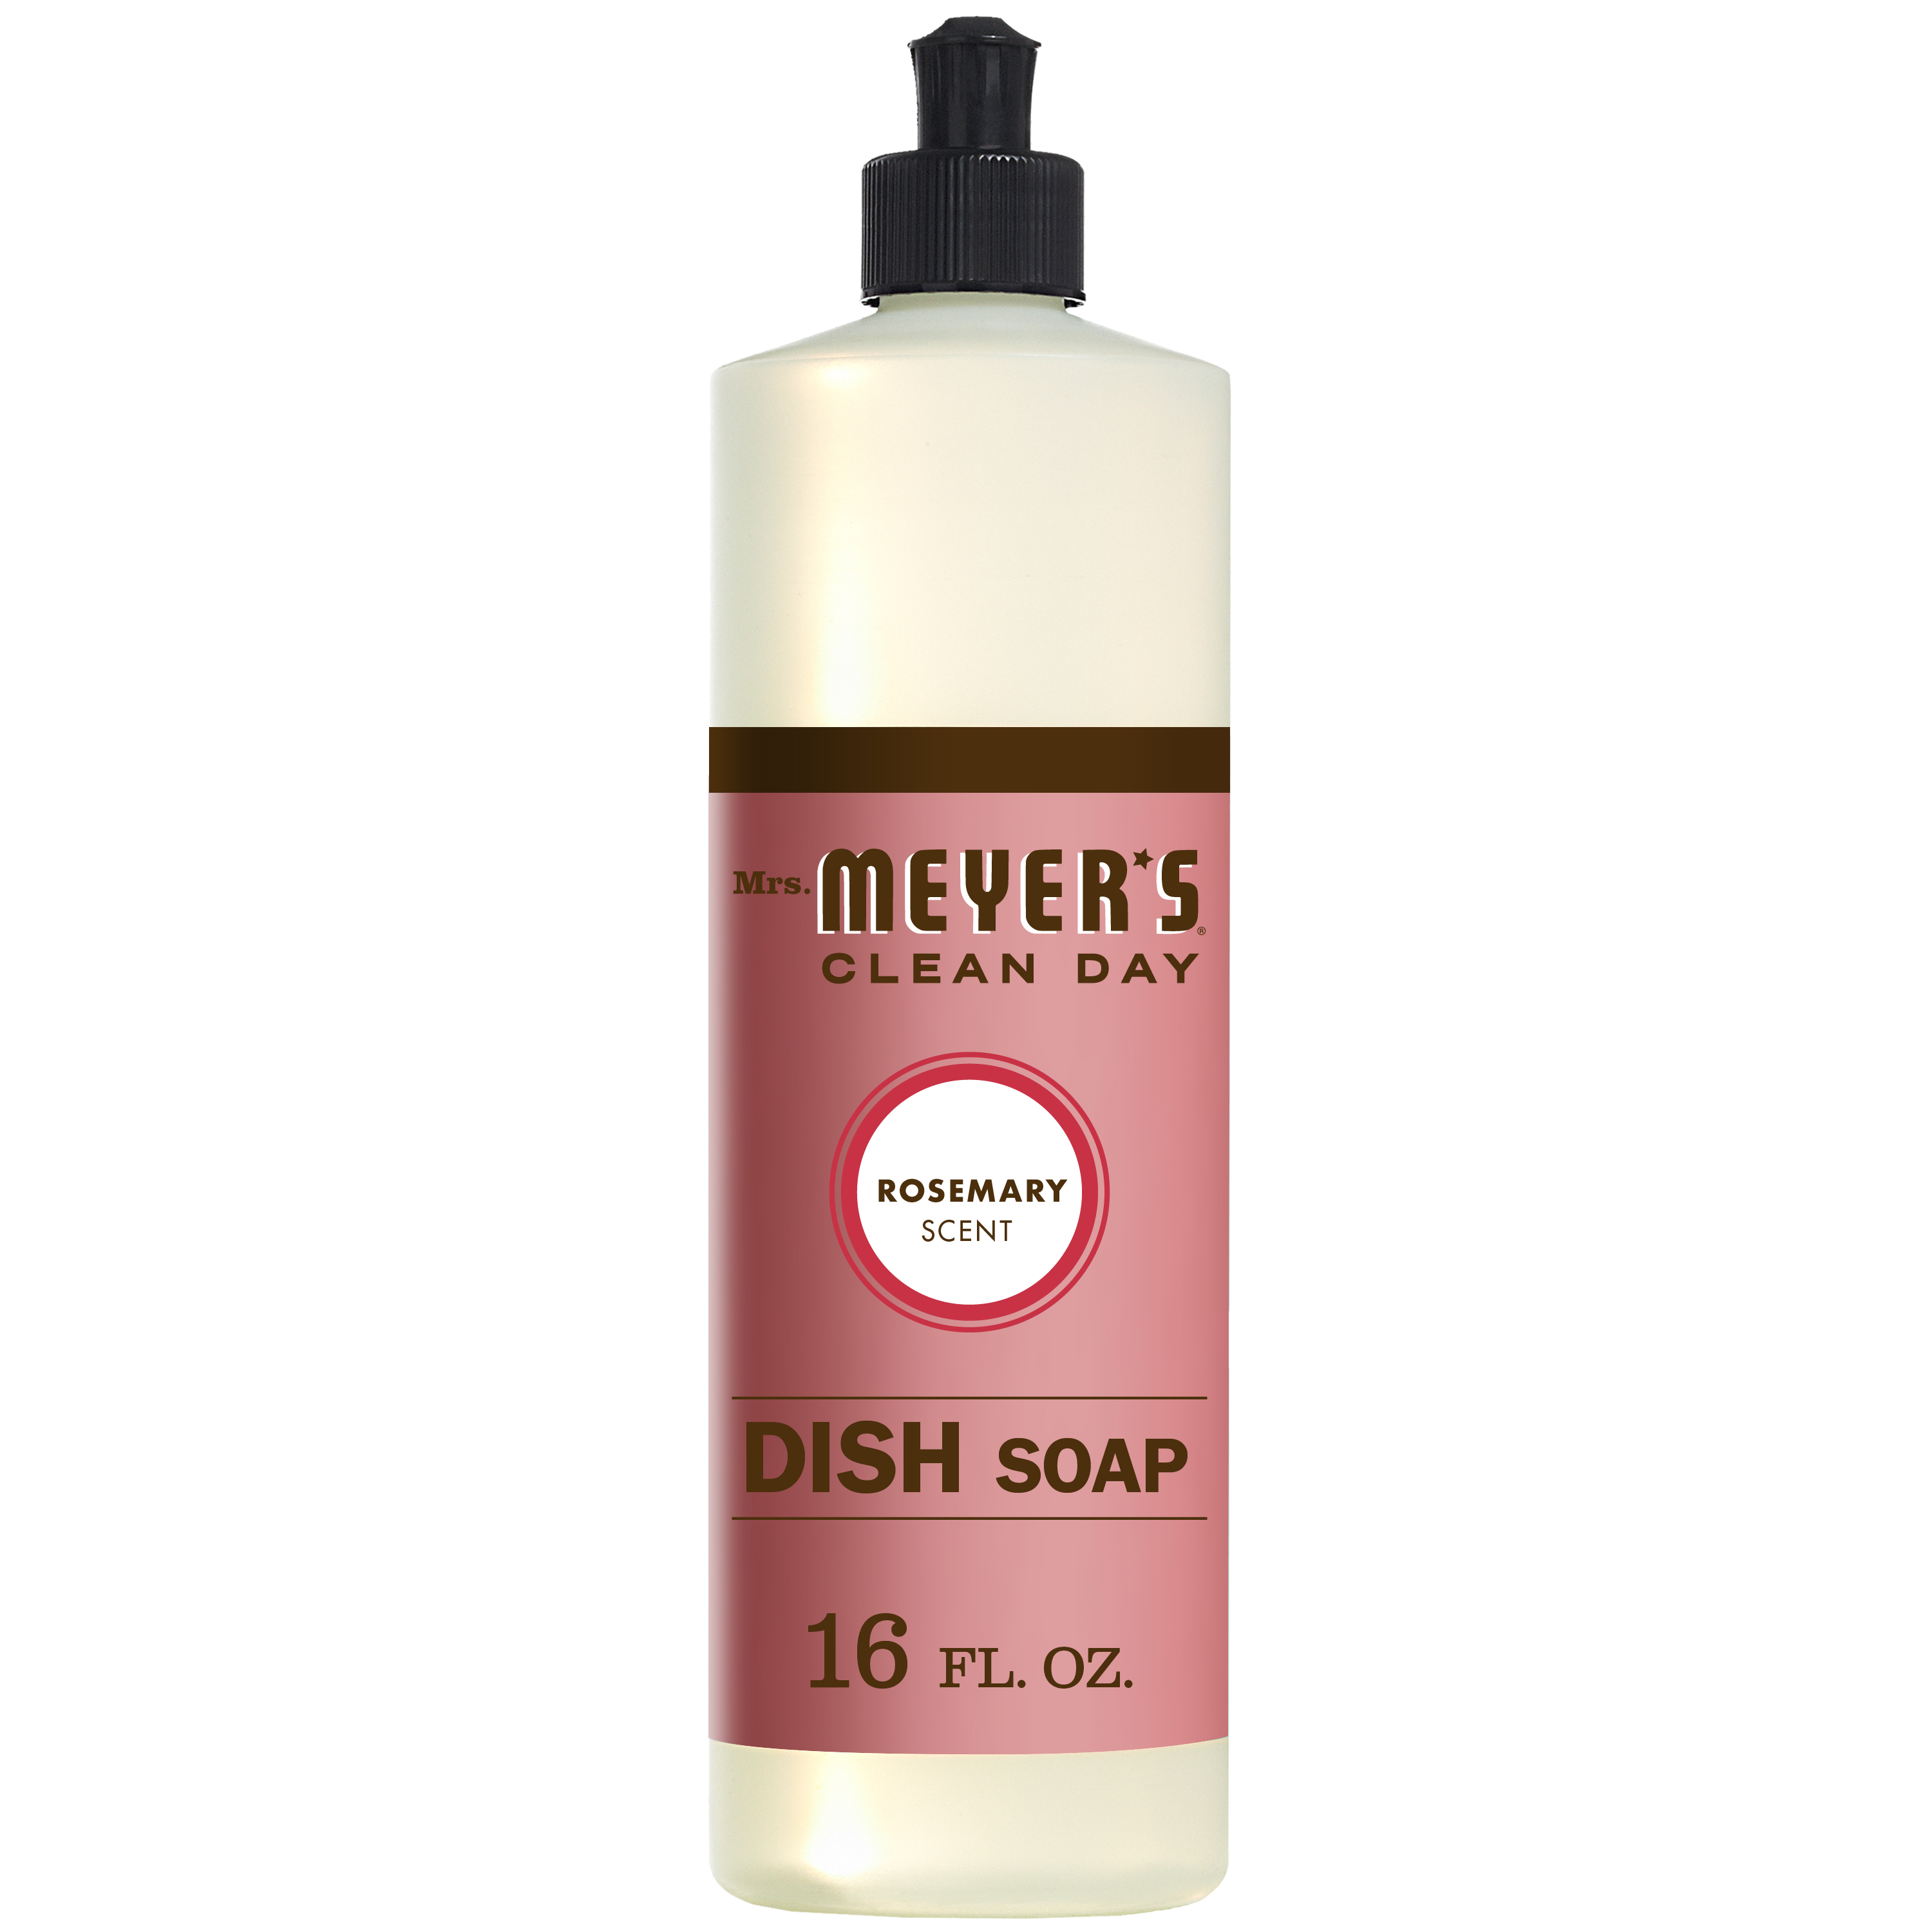 (2 pack) Mrs  Meyer's Clean Day Dish Soap, Rosemary, 16 fl oz